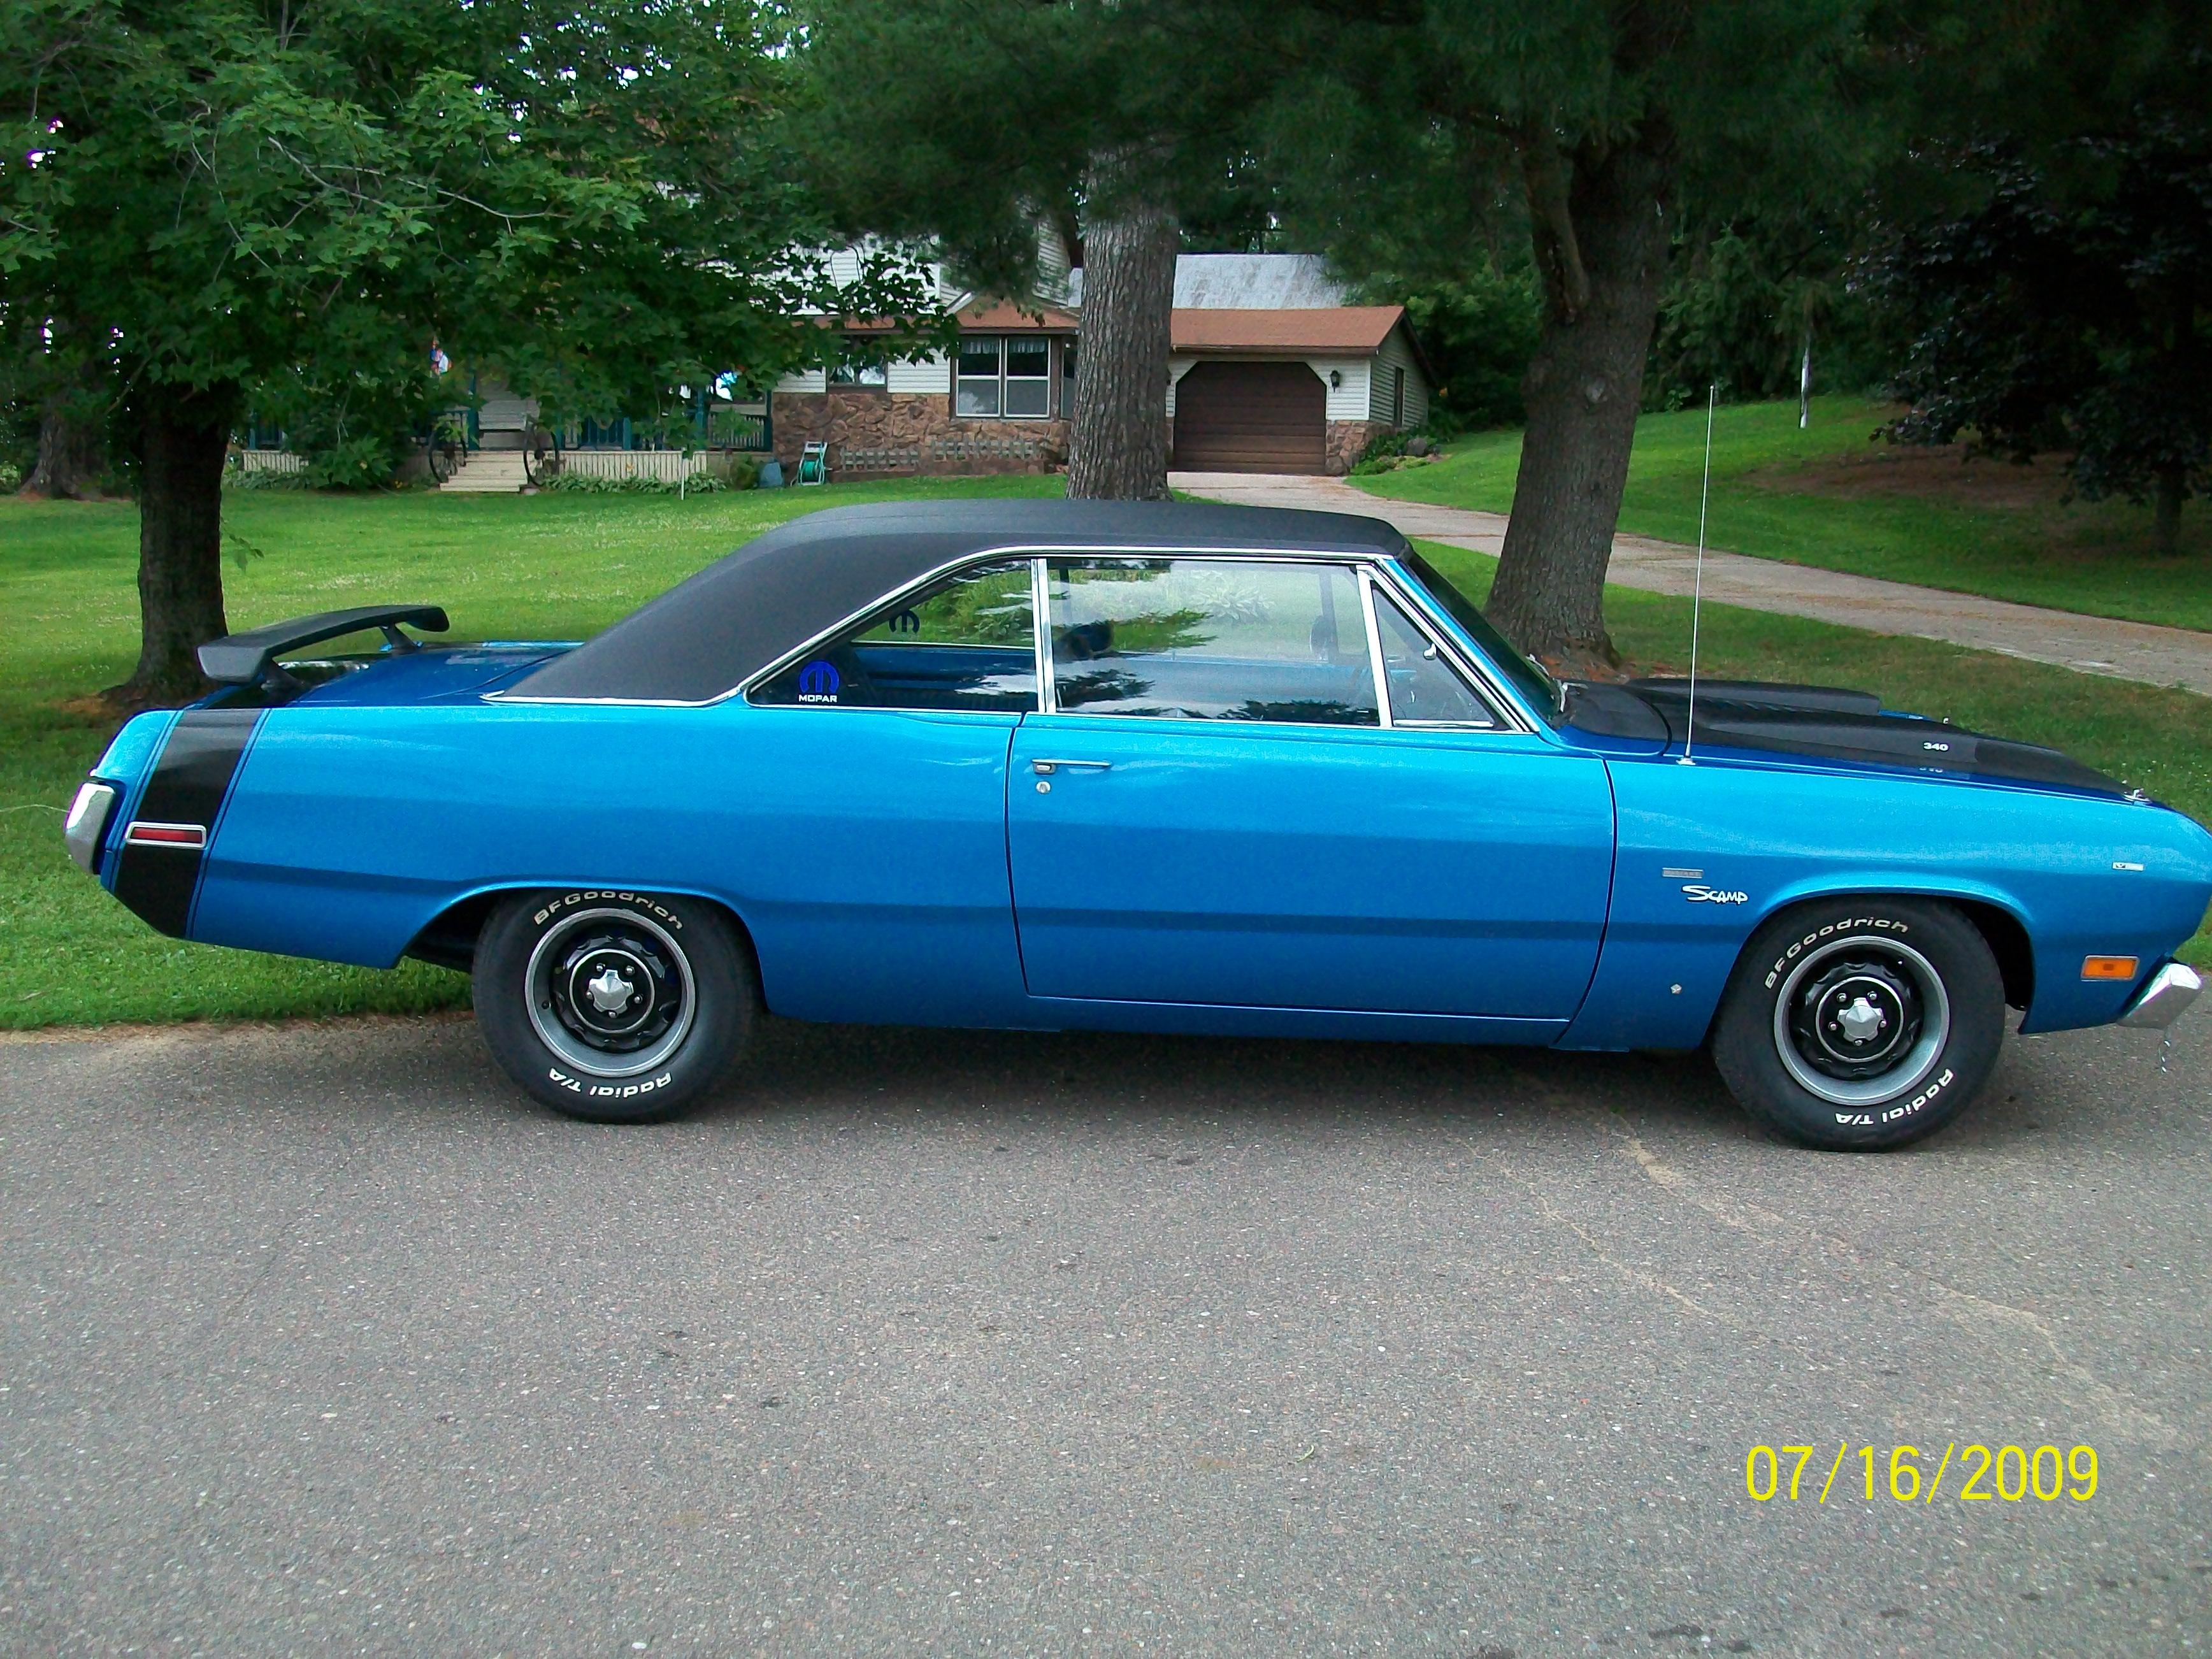 mopar_nut_440_6's 1971 Plymouth Scamp